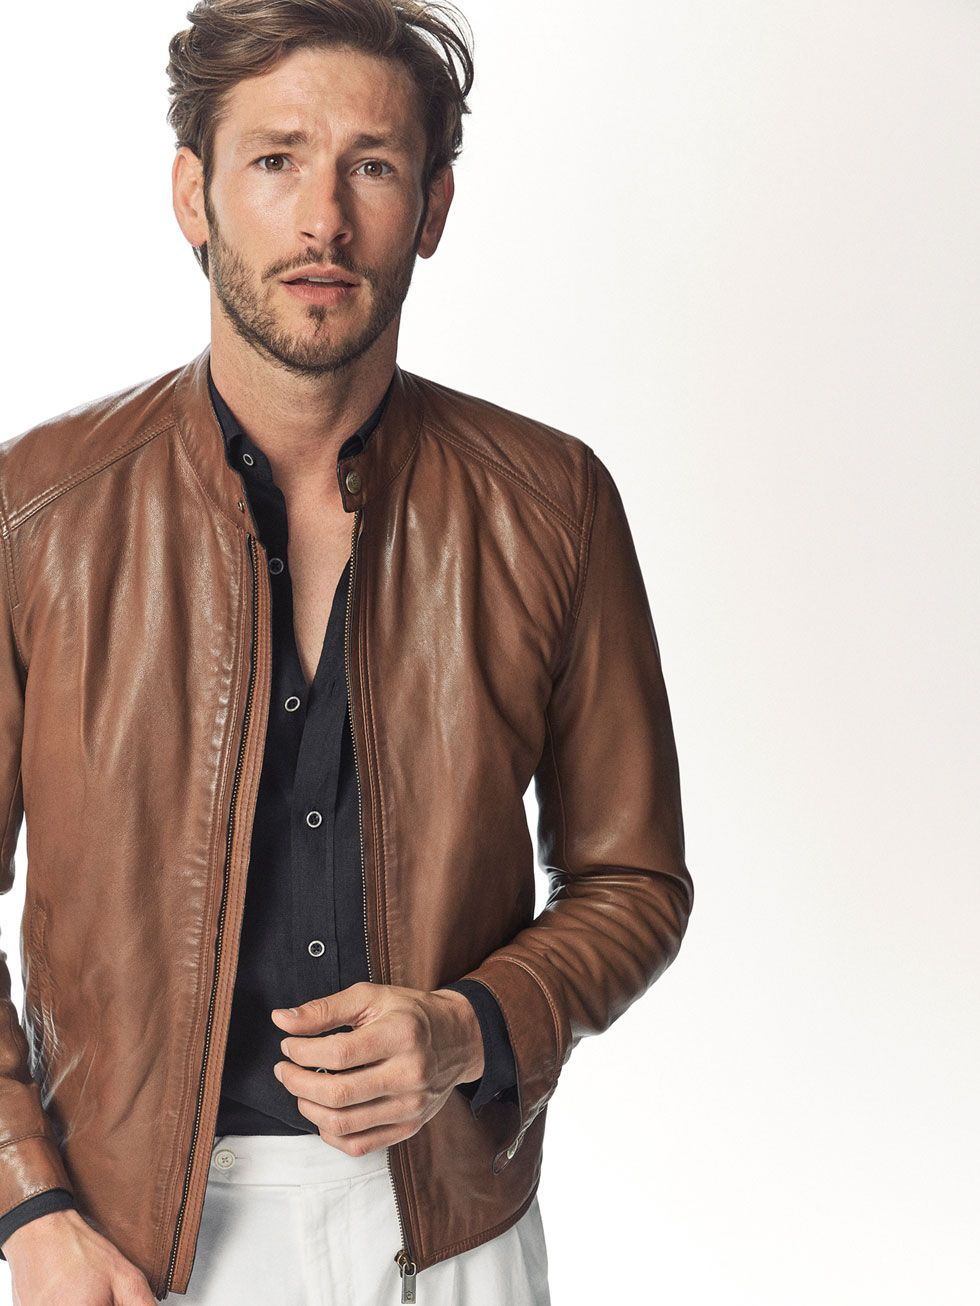 a89640510 Autumn Spring summer 2017 Men´s BROWN NAPPA LEATHER JACKET at ...